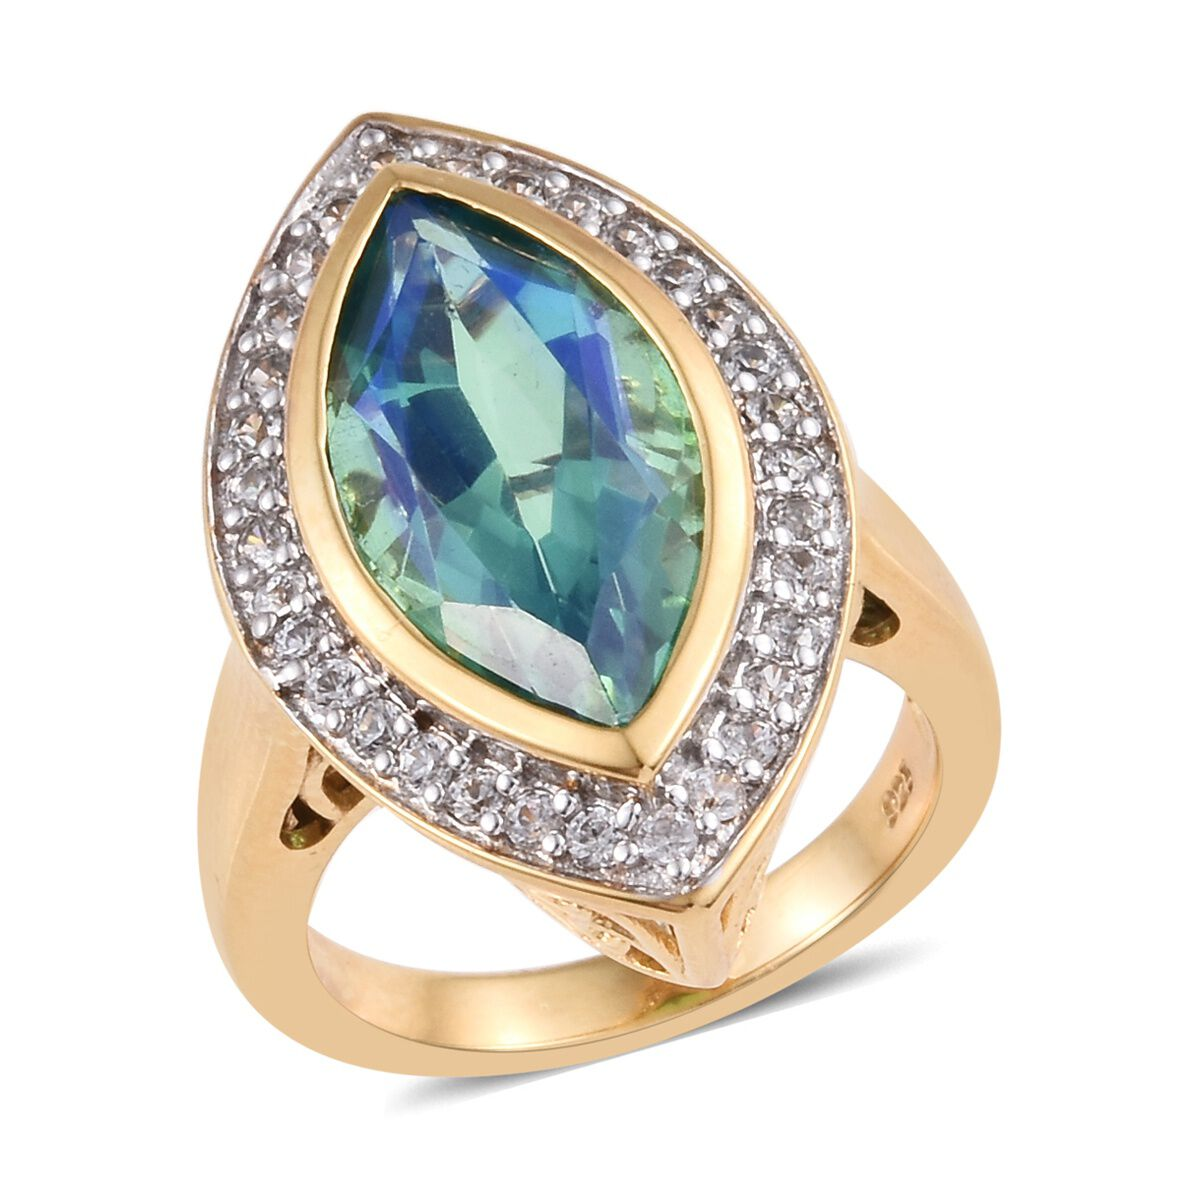 Cambodian Zircon Solitaire Ring Silver 14ct Gold Plated Peacock Triplet Quartz